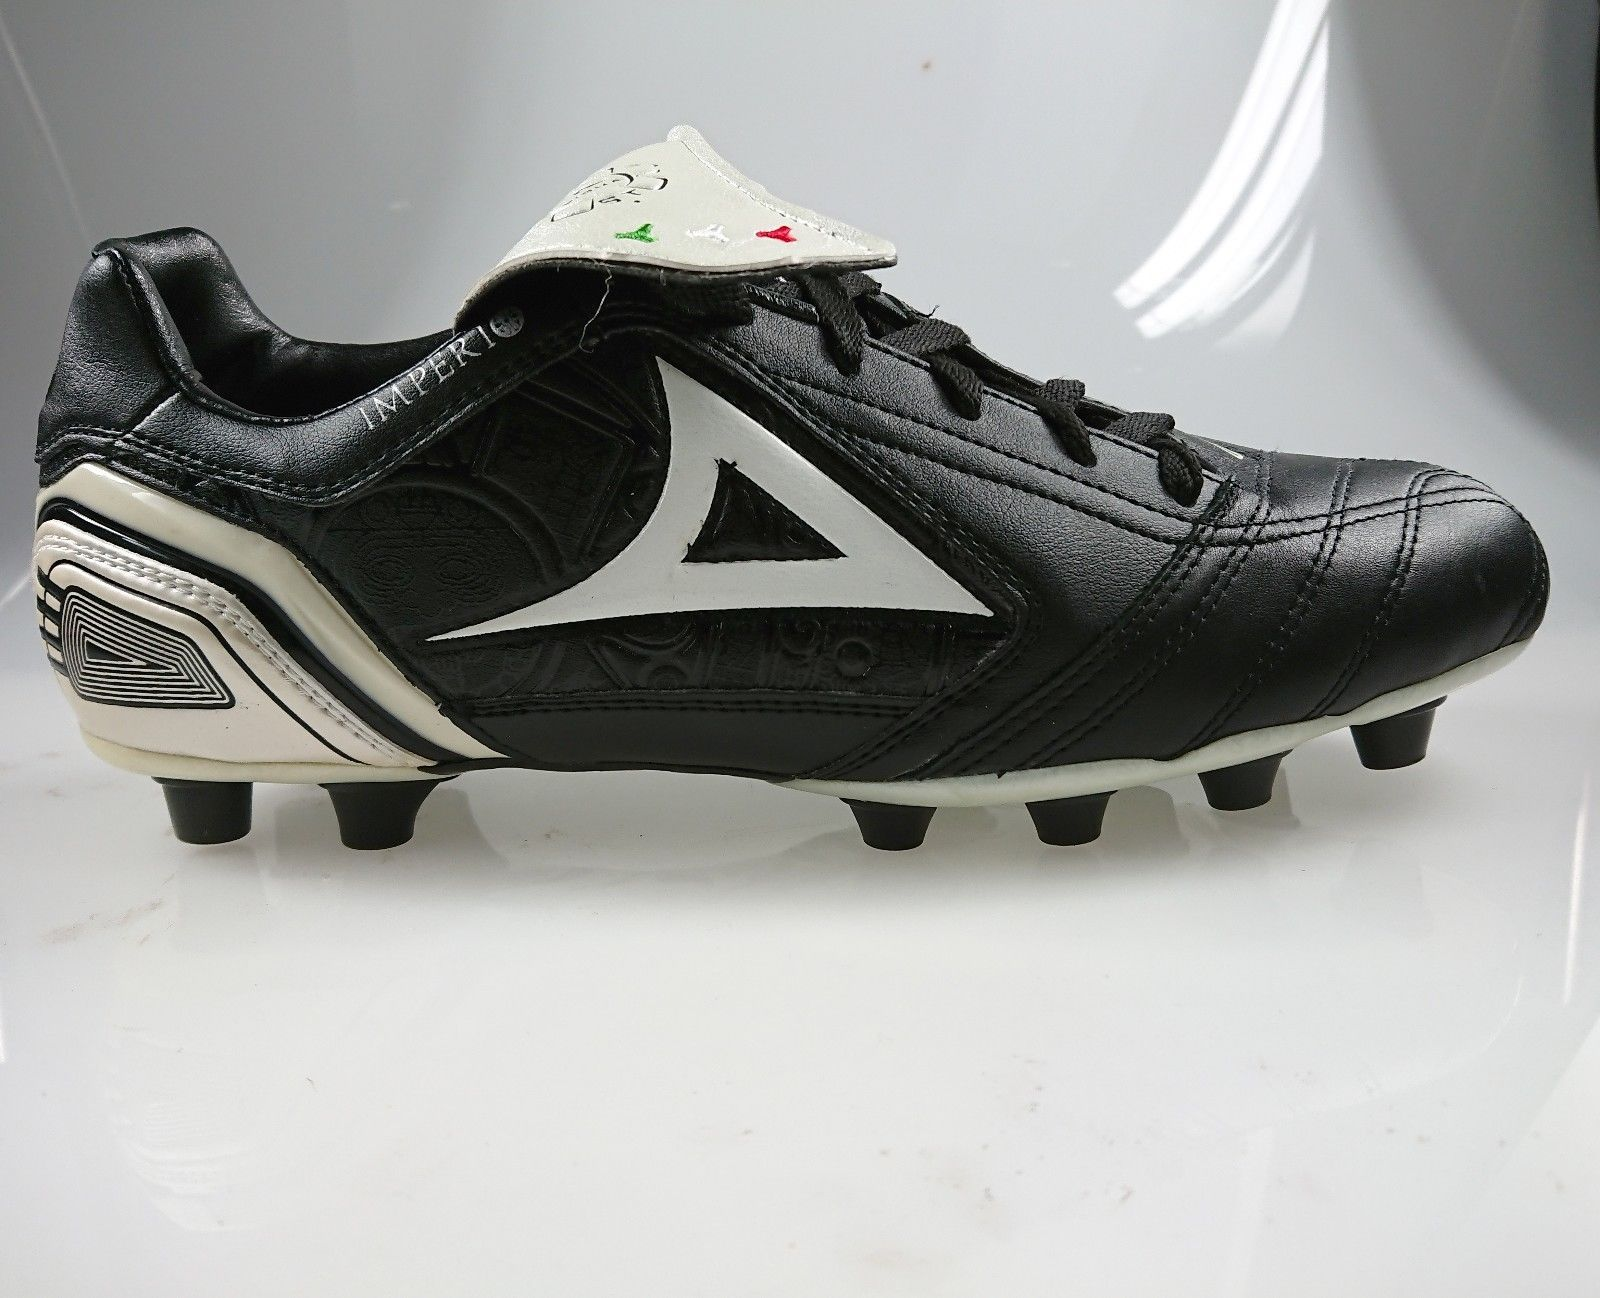 38c44263f69 Authentic Pirma Soccer Cleats Style Imperio and 50 similar items. 57